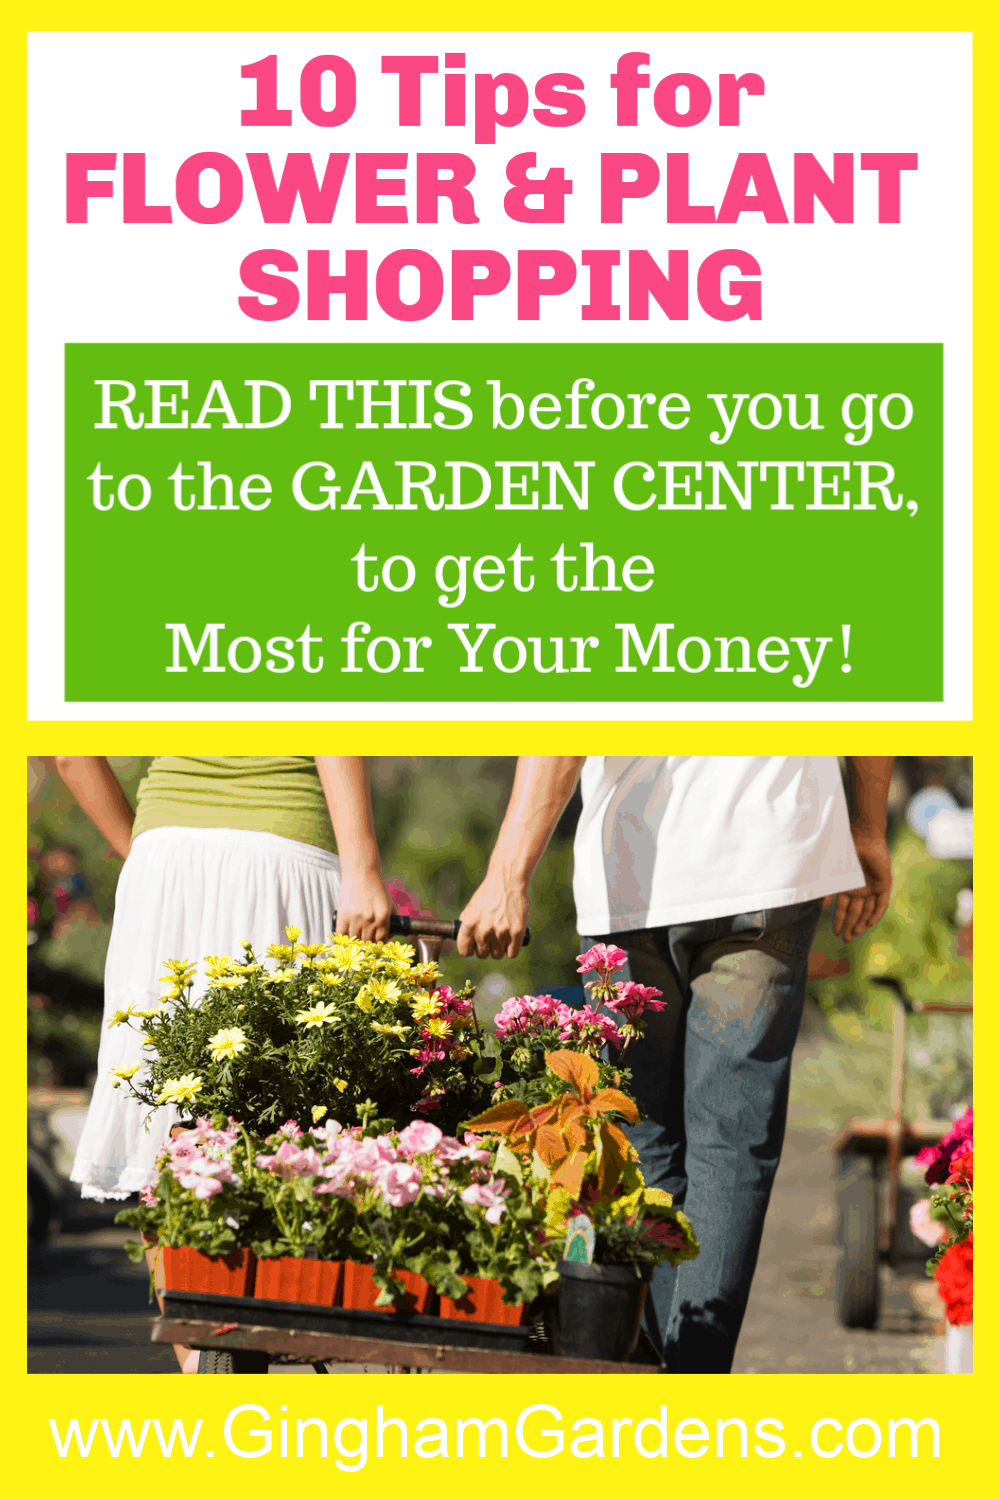 Image of a couple pulling a cart in a garden center with text overlay - 10 Tips for Flower & Plant Shopping